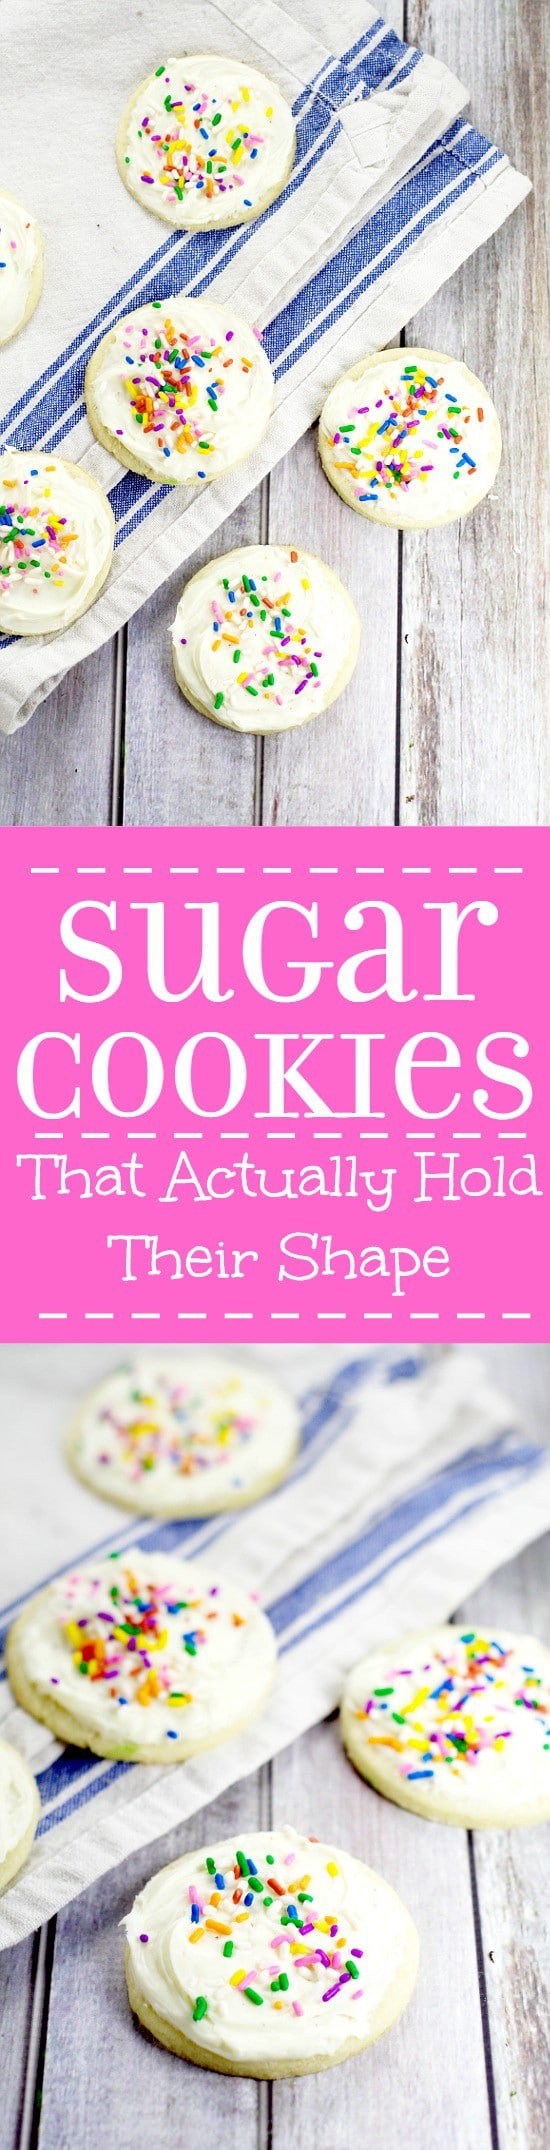 Sugar Cookies that Hold Their Shape.My grandma's recipe for the BEST soft, chewy sugar cookies that hold their shape. We use this recipe for perfect sugar cookies for Christmas, birthdays, and every time there's a sugar cookie craving.